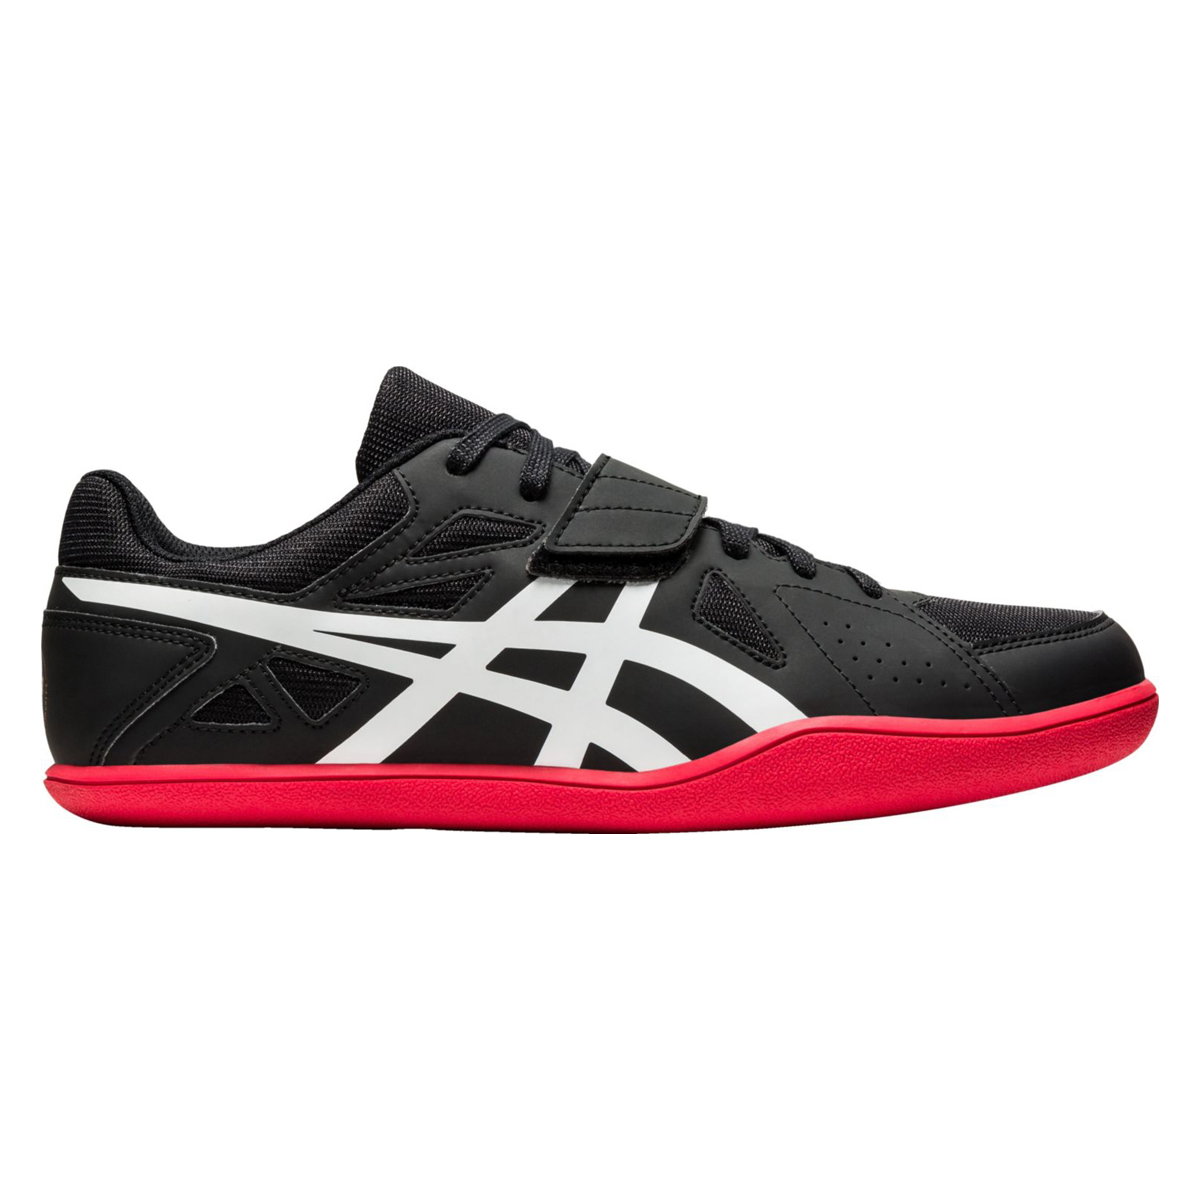 Asics Hyper Throw 3 Men's Track & Field Throwing Shoes Black, White